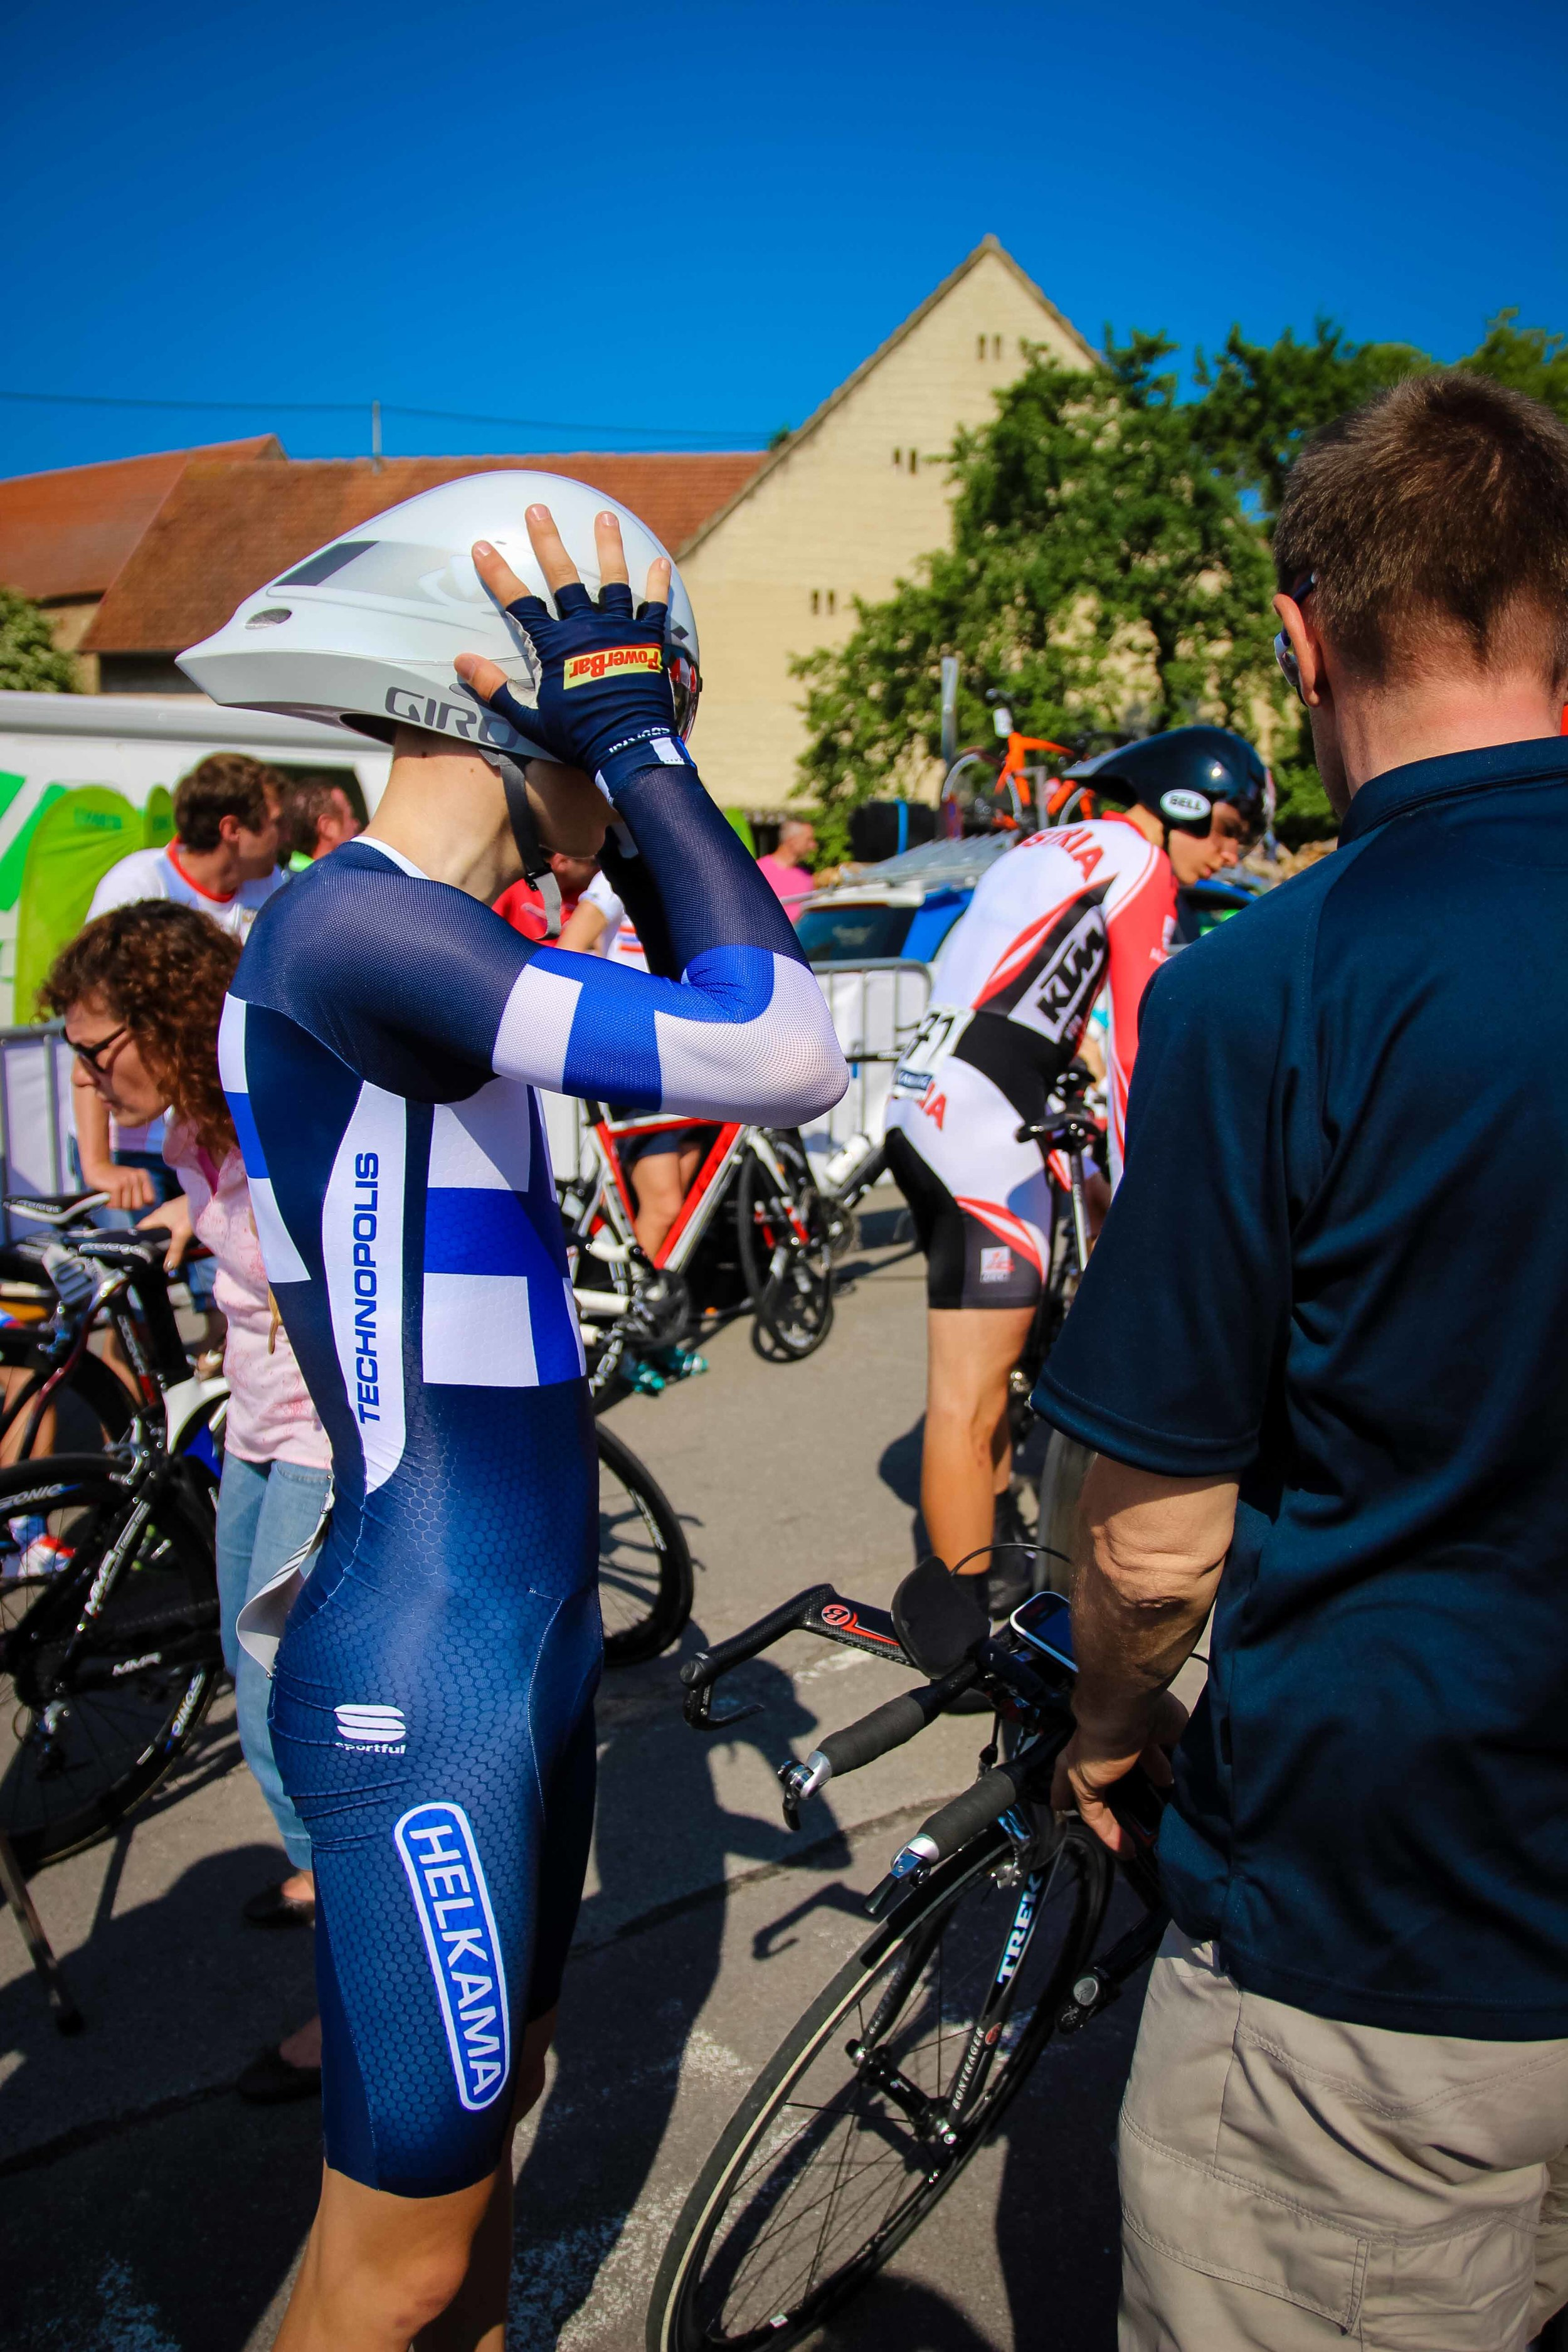 Chatting with Toomas before the start